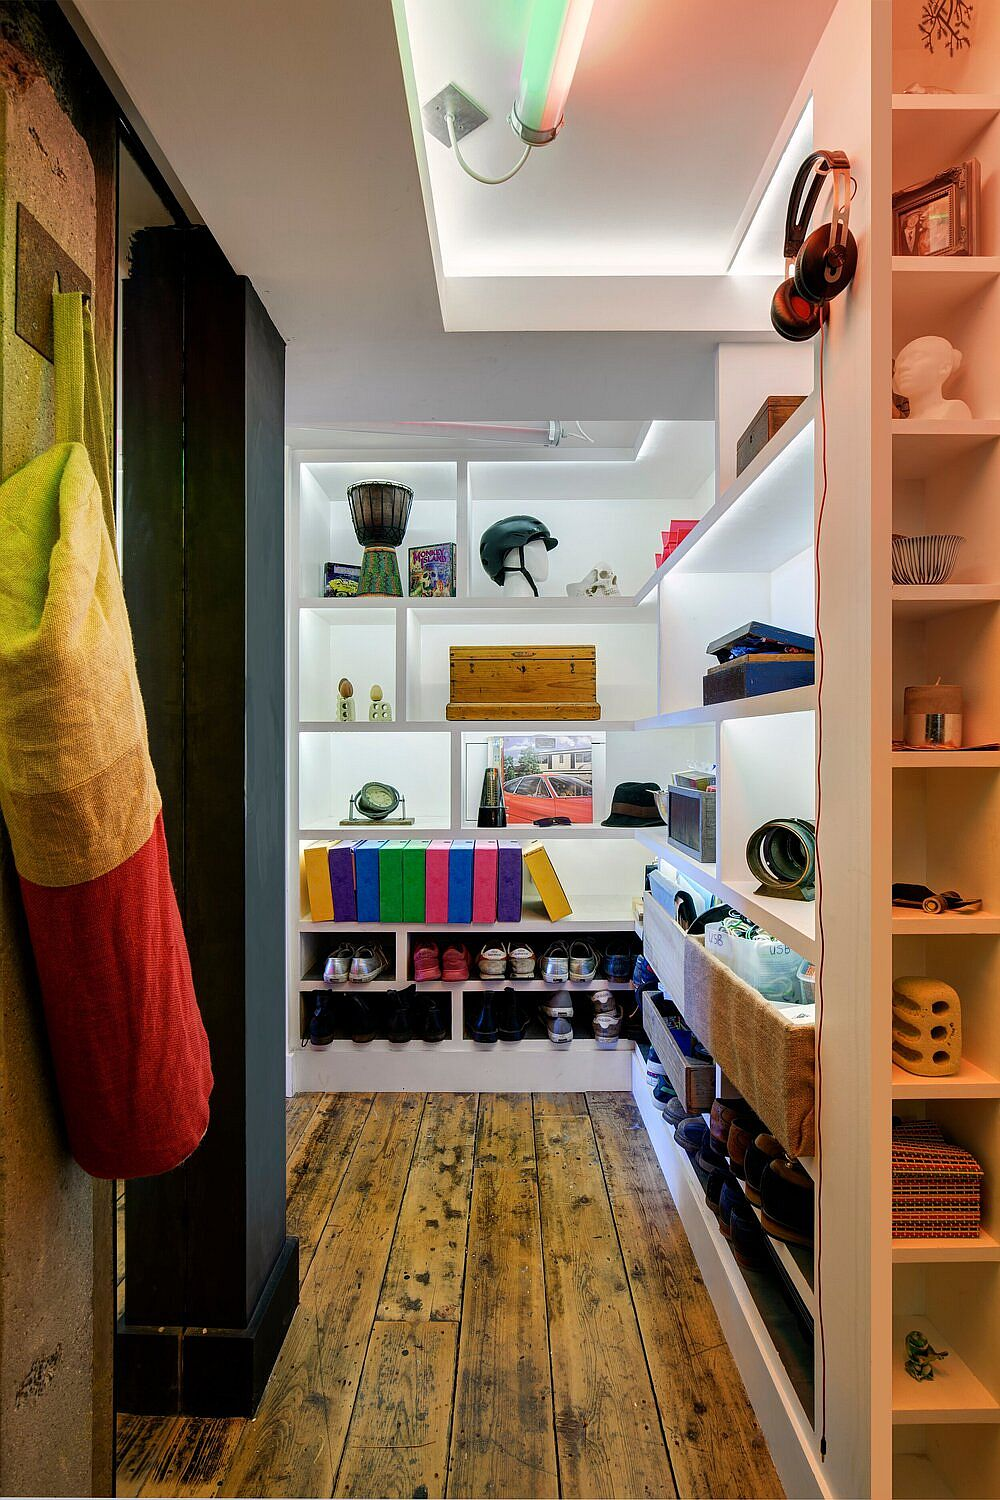 Beautifully lit closet also is used as a lovely decorative element inside the apartment